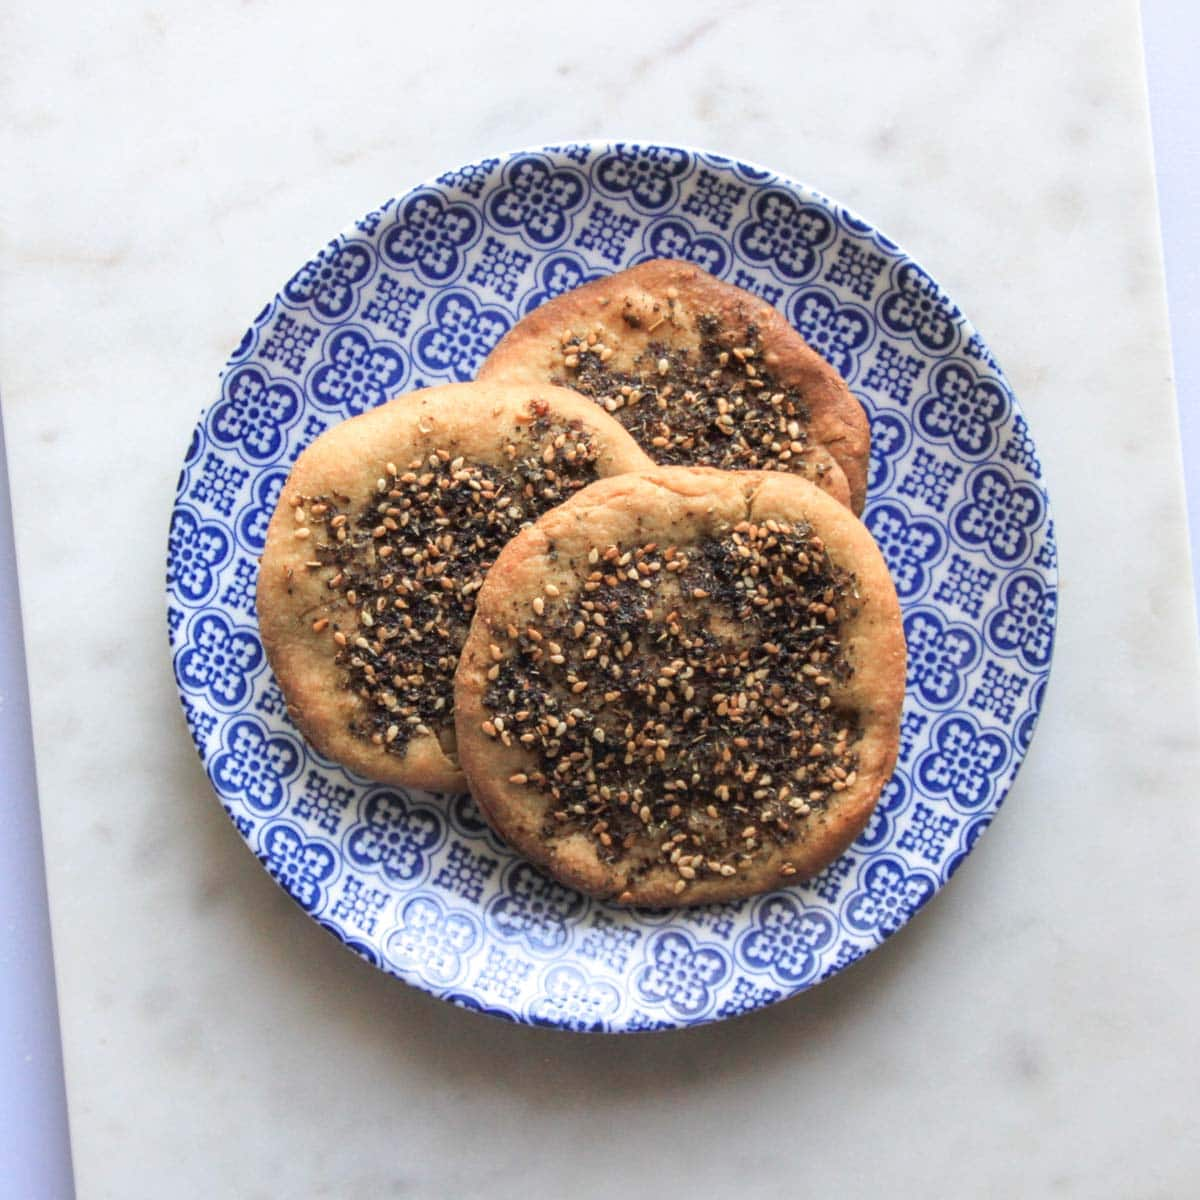 cooked manakeesh on a plate